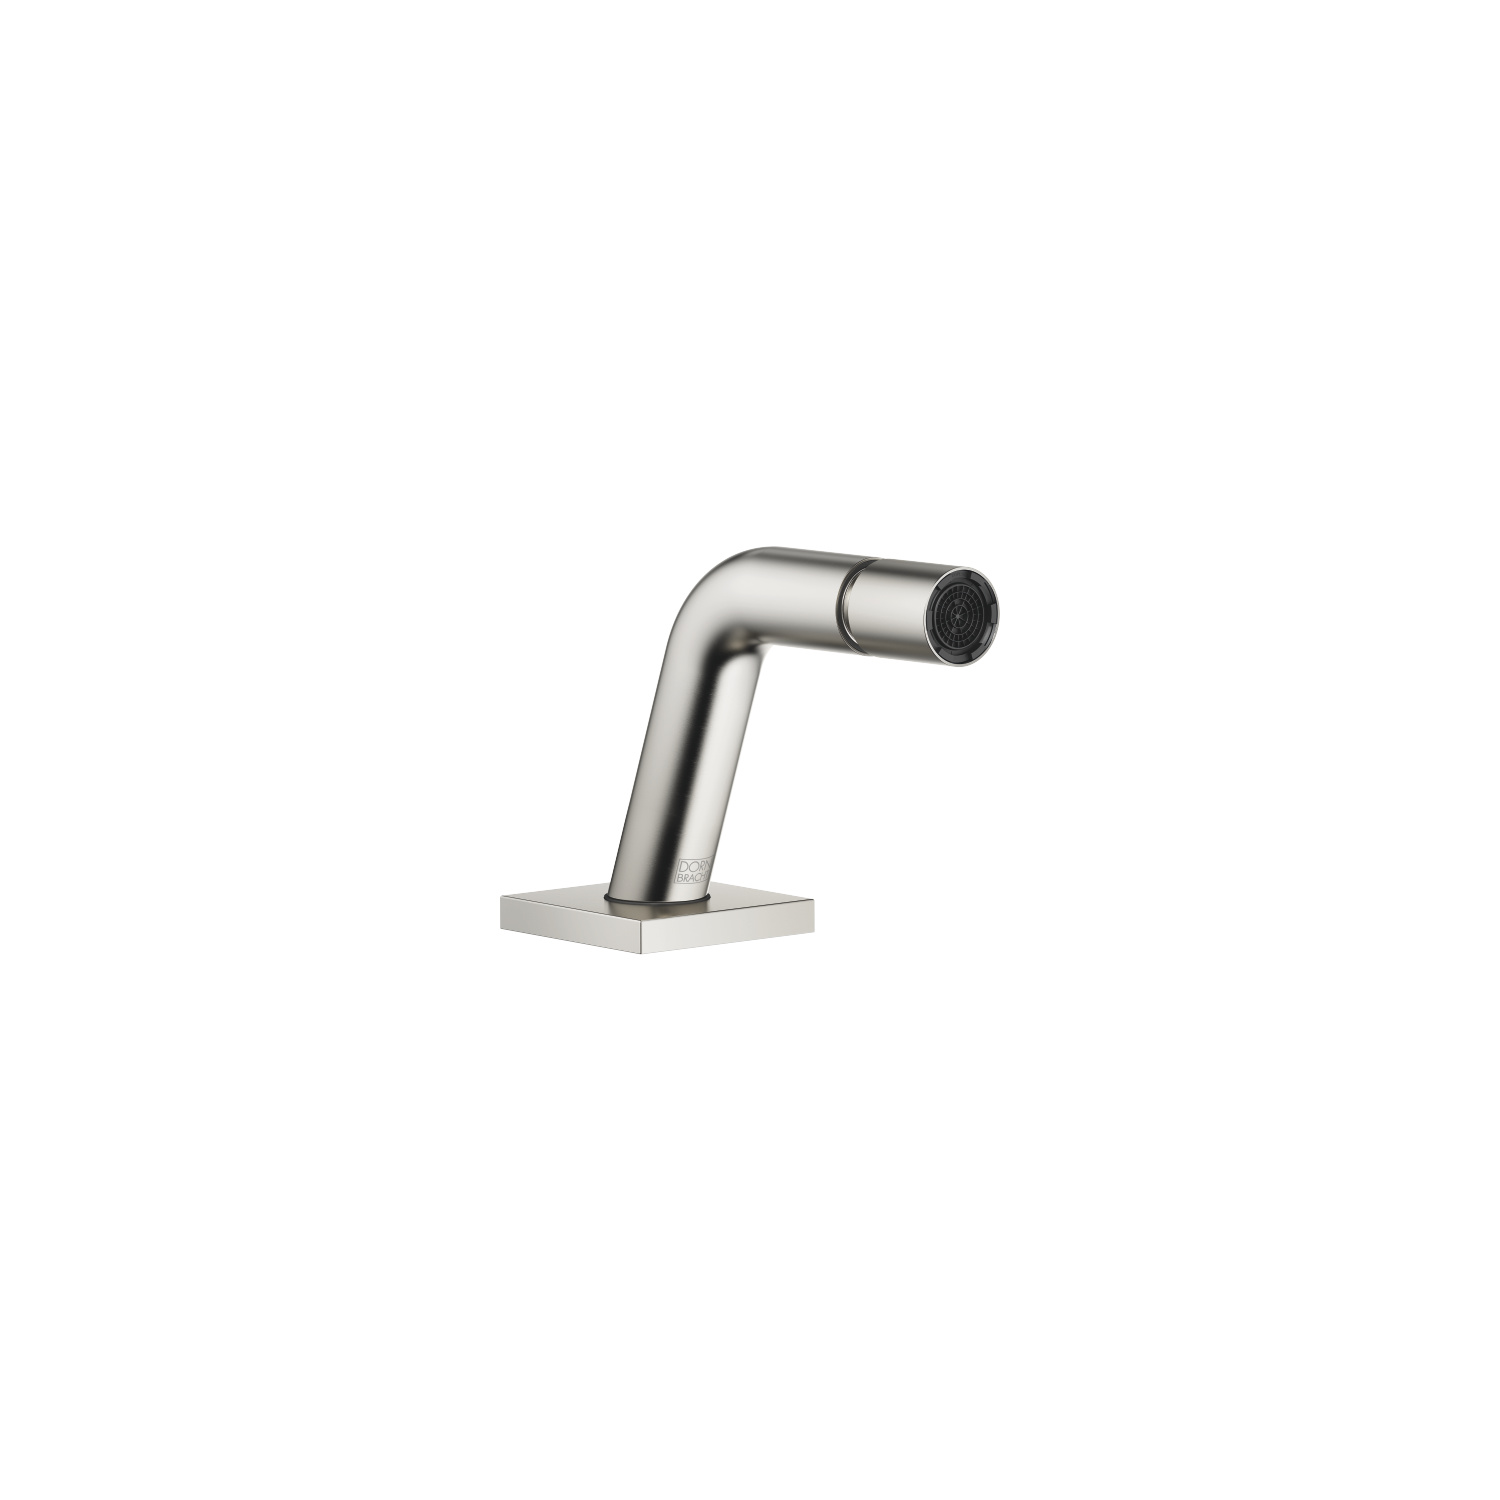 Bidet spout without drain - platinum matte